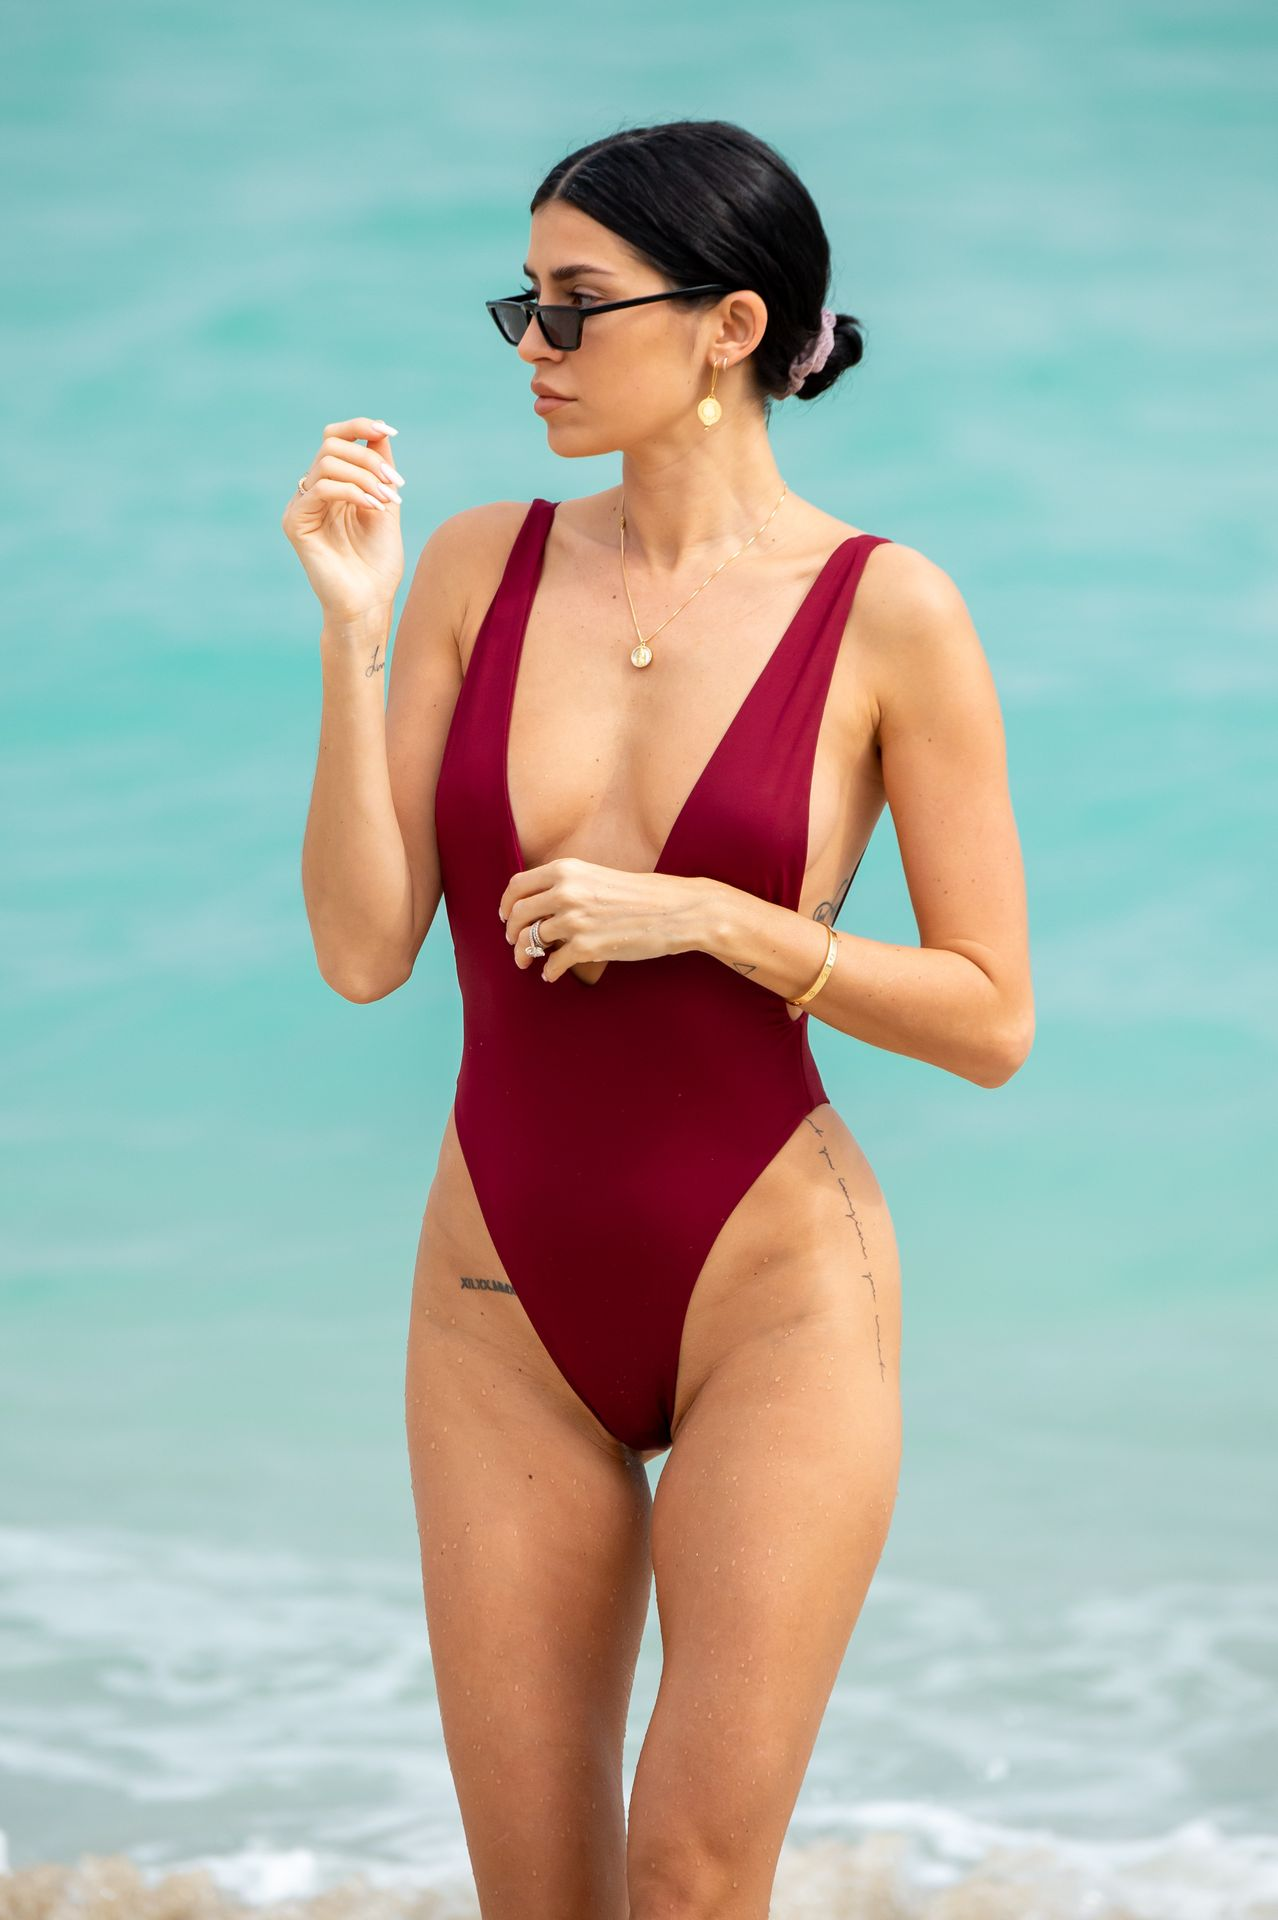 Nicole Williams Shows Off Her Amazing Curves In Miami 0025